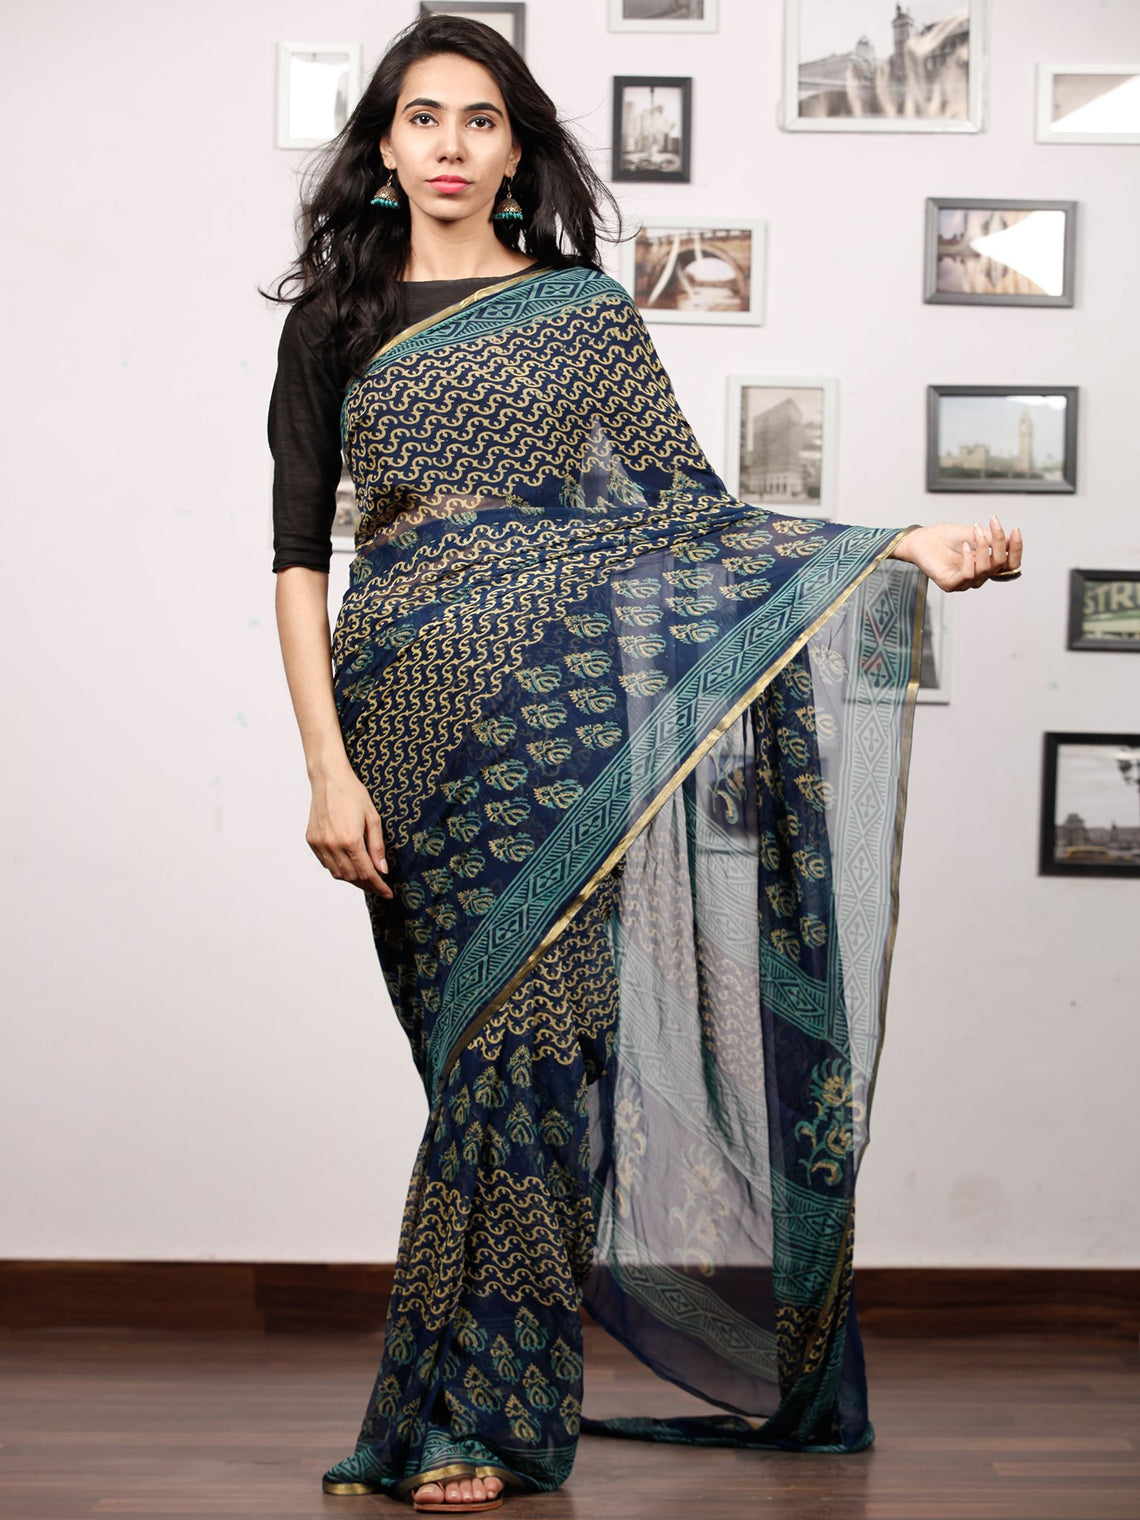 Blue Yellow Green Hand Block Printed Chiffon Saree with Zari Border - S031703507